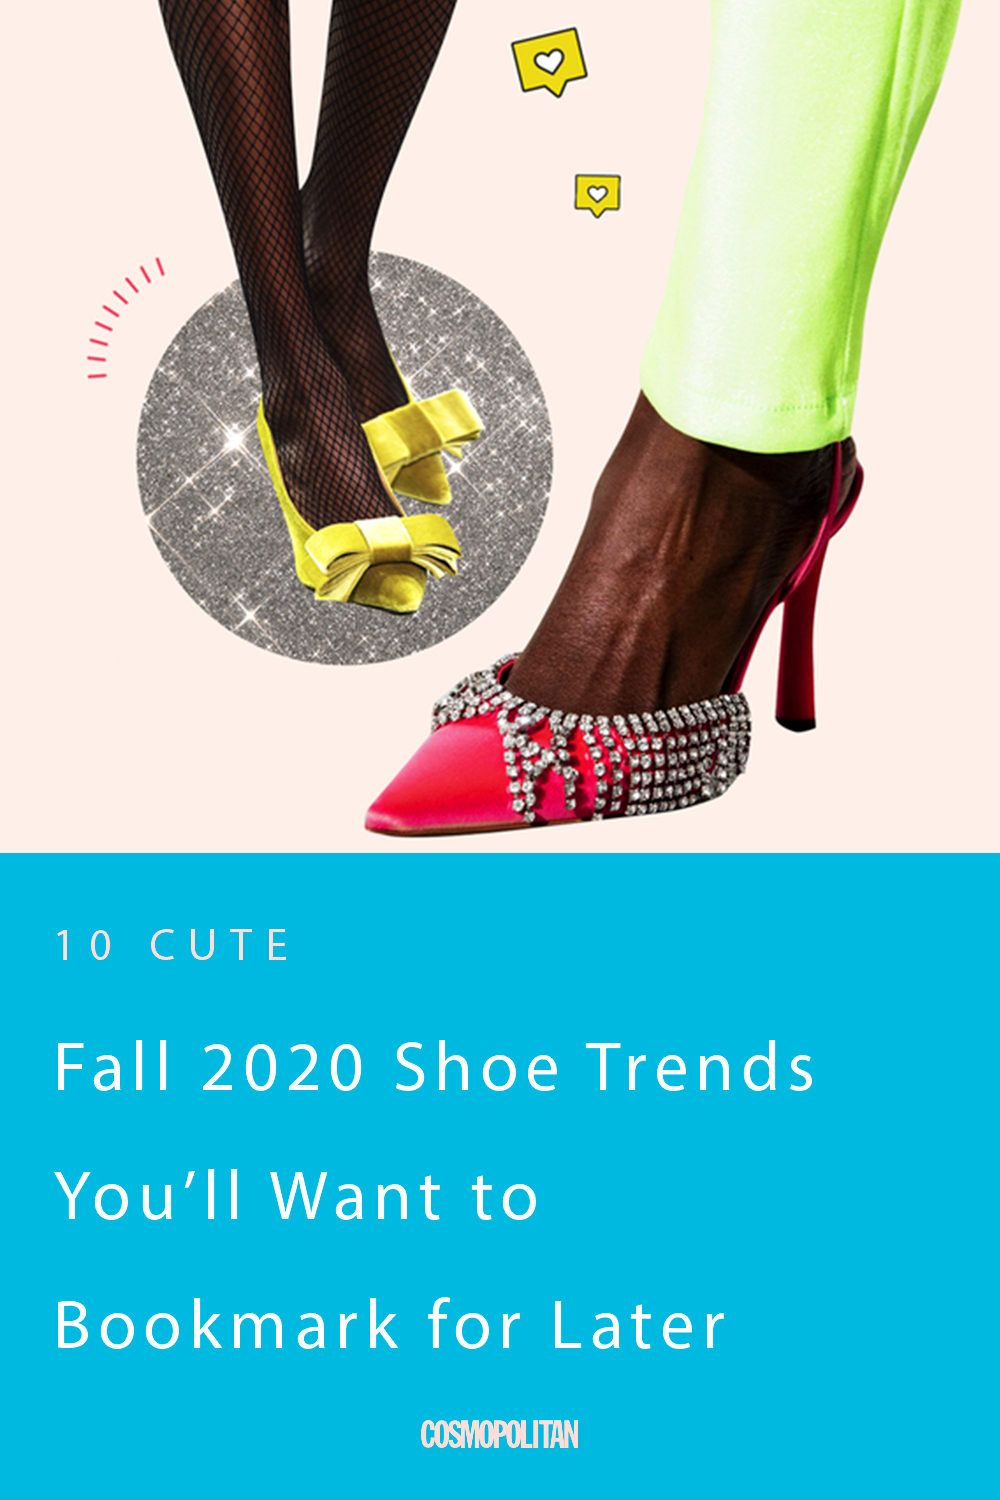 10 Cute Fall 2020 Shoe Trends You'll Want to Bookmark for Later